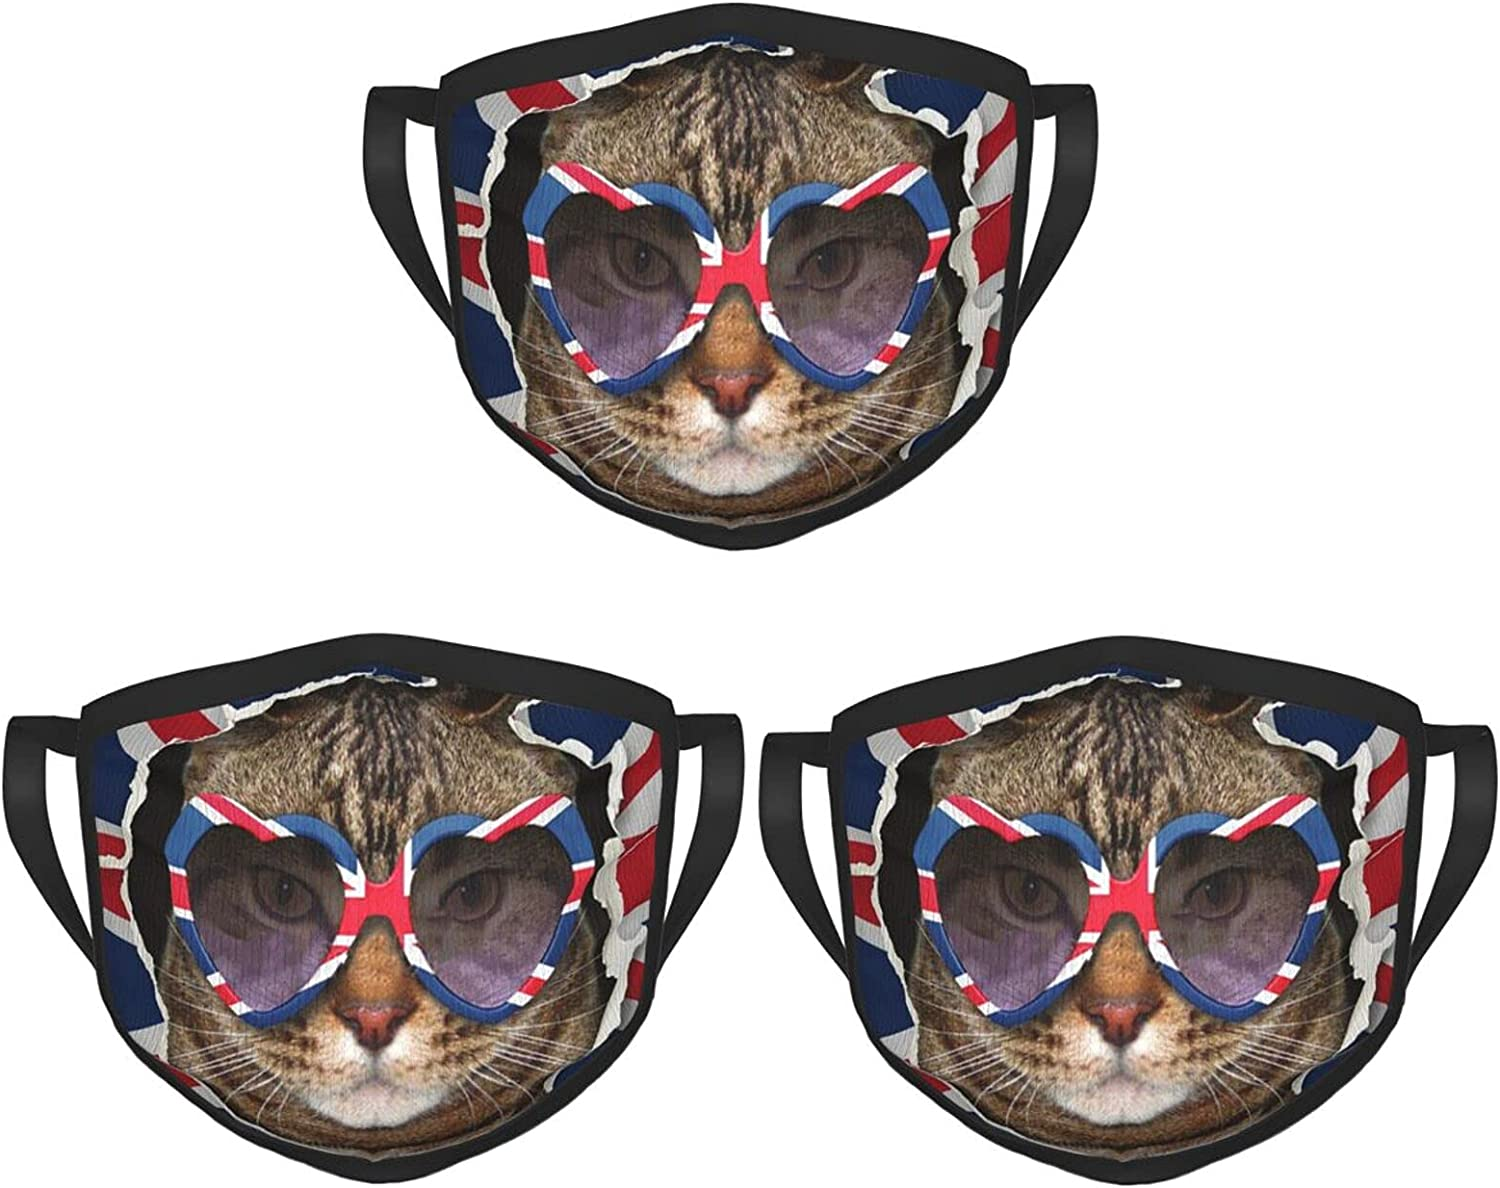 Balaclava Earmuffs Cat Behind Uk Flag Funny Heart Sunglasses Face Mouth Cover Mask Reusable Dust Scarf Towel Cover Headwrap